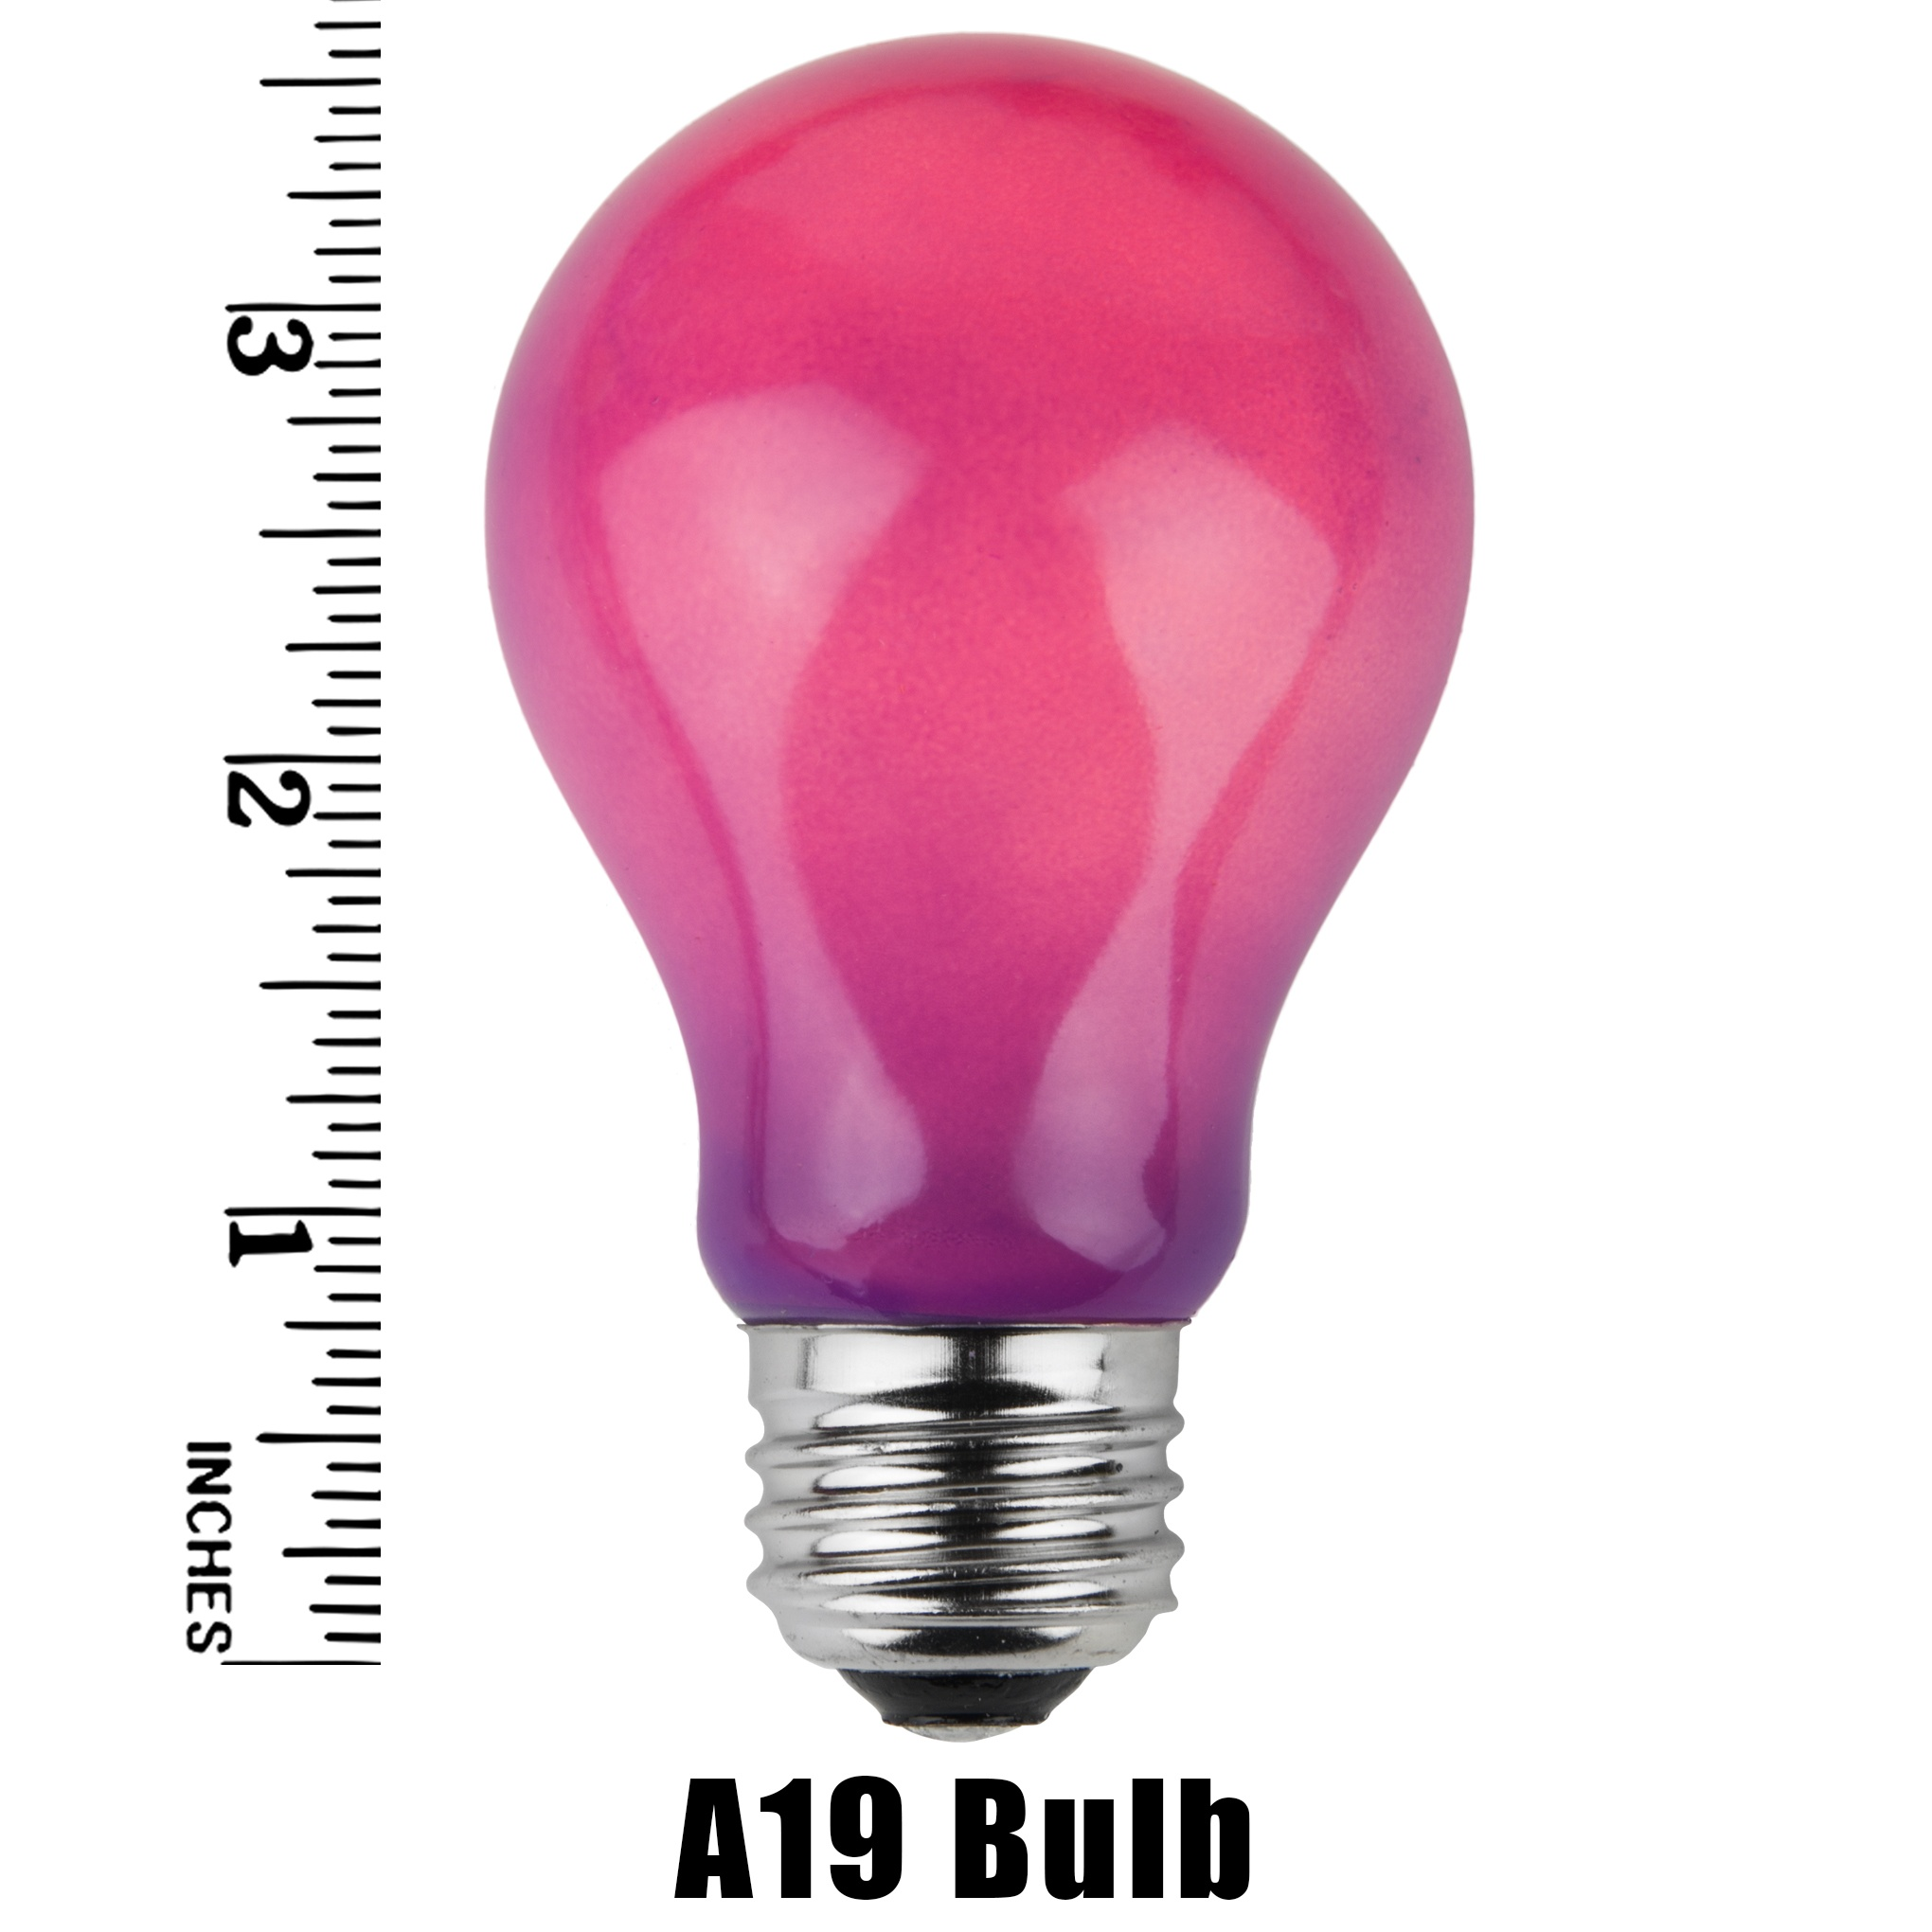 A19 Purple Opaque Incandescent Bulb Measurement